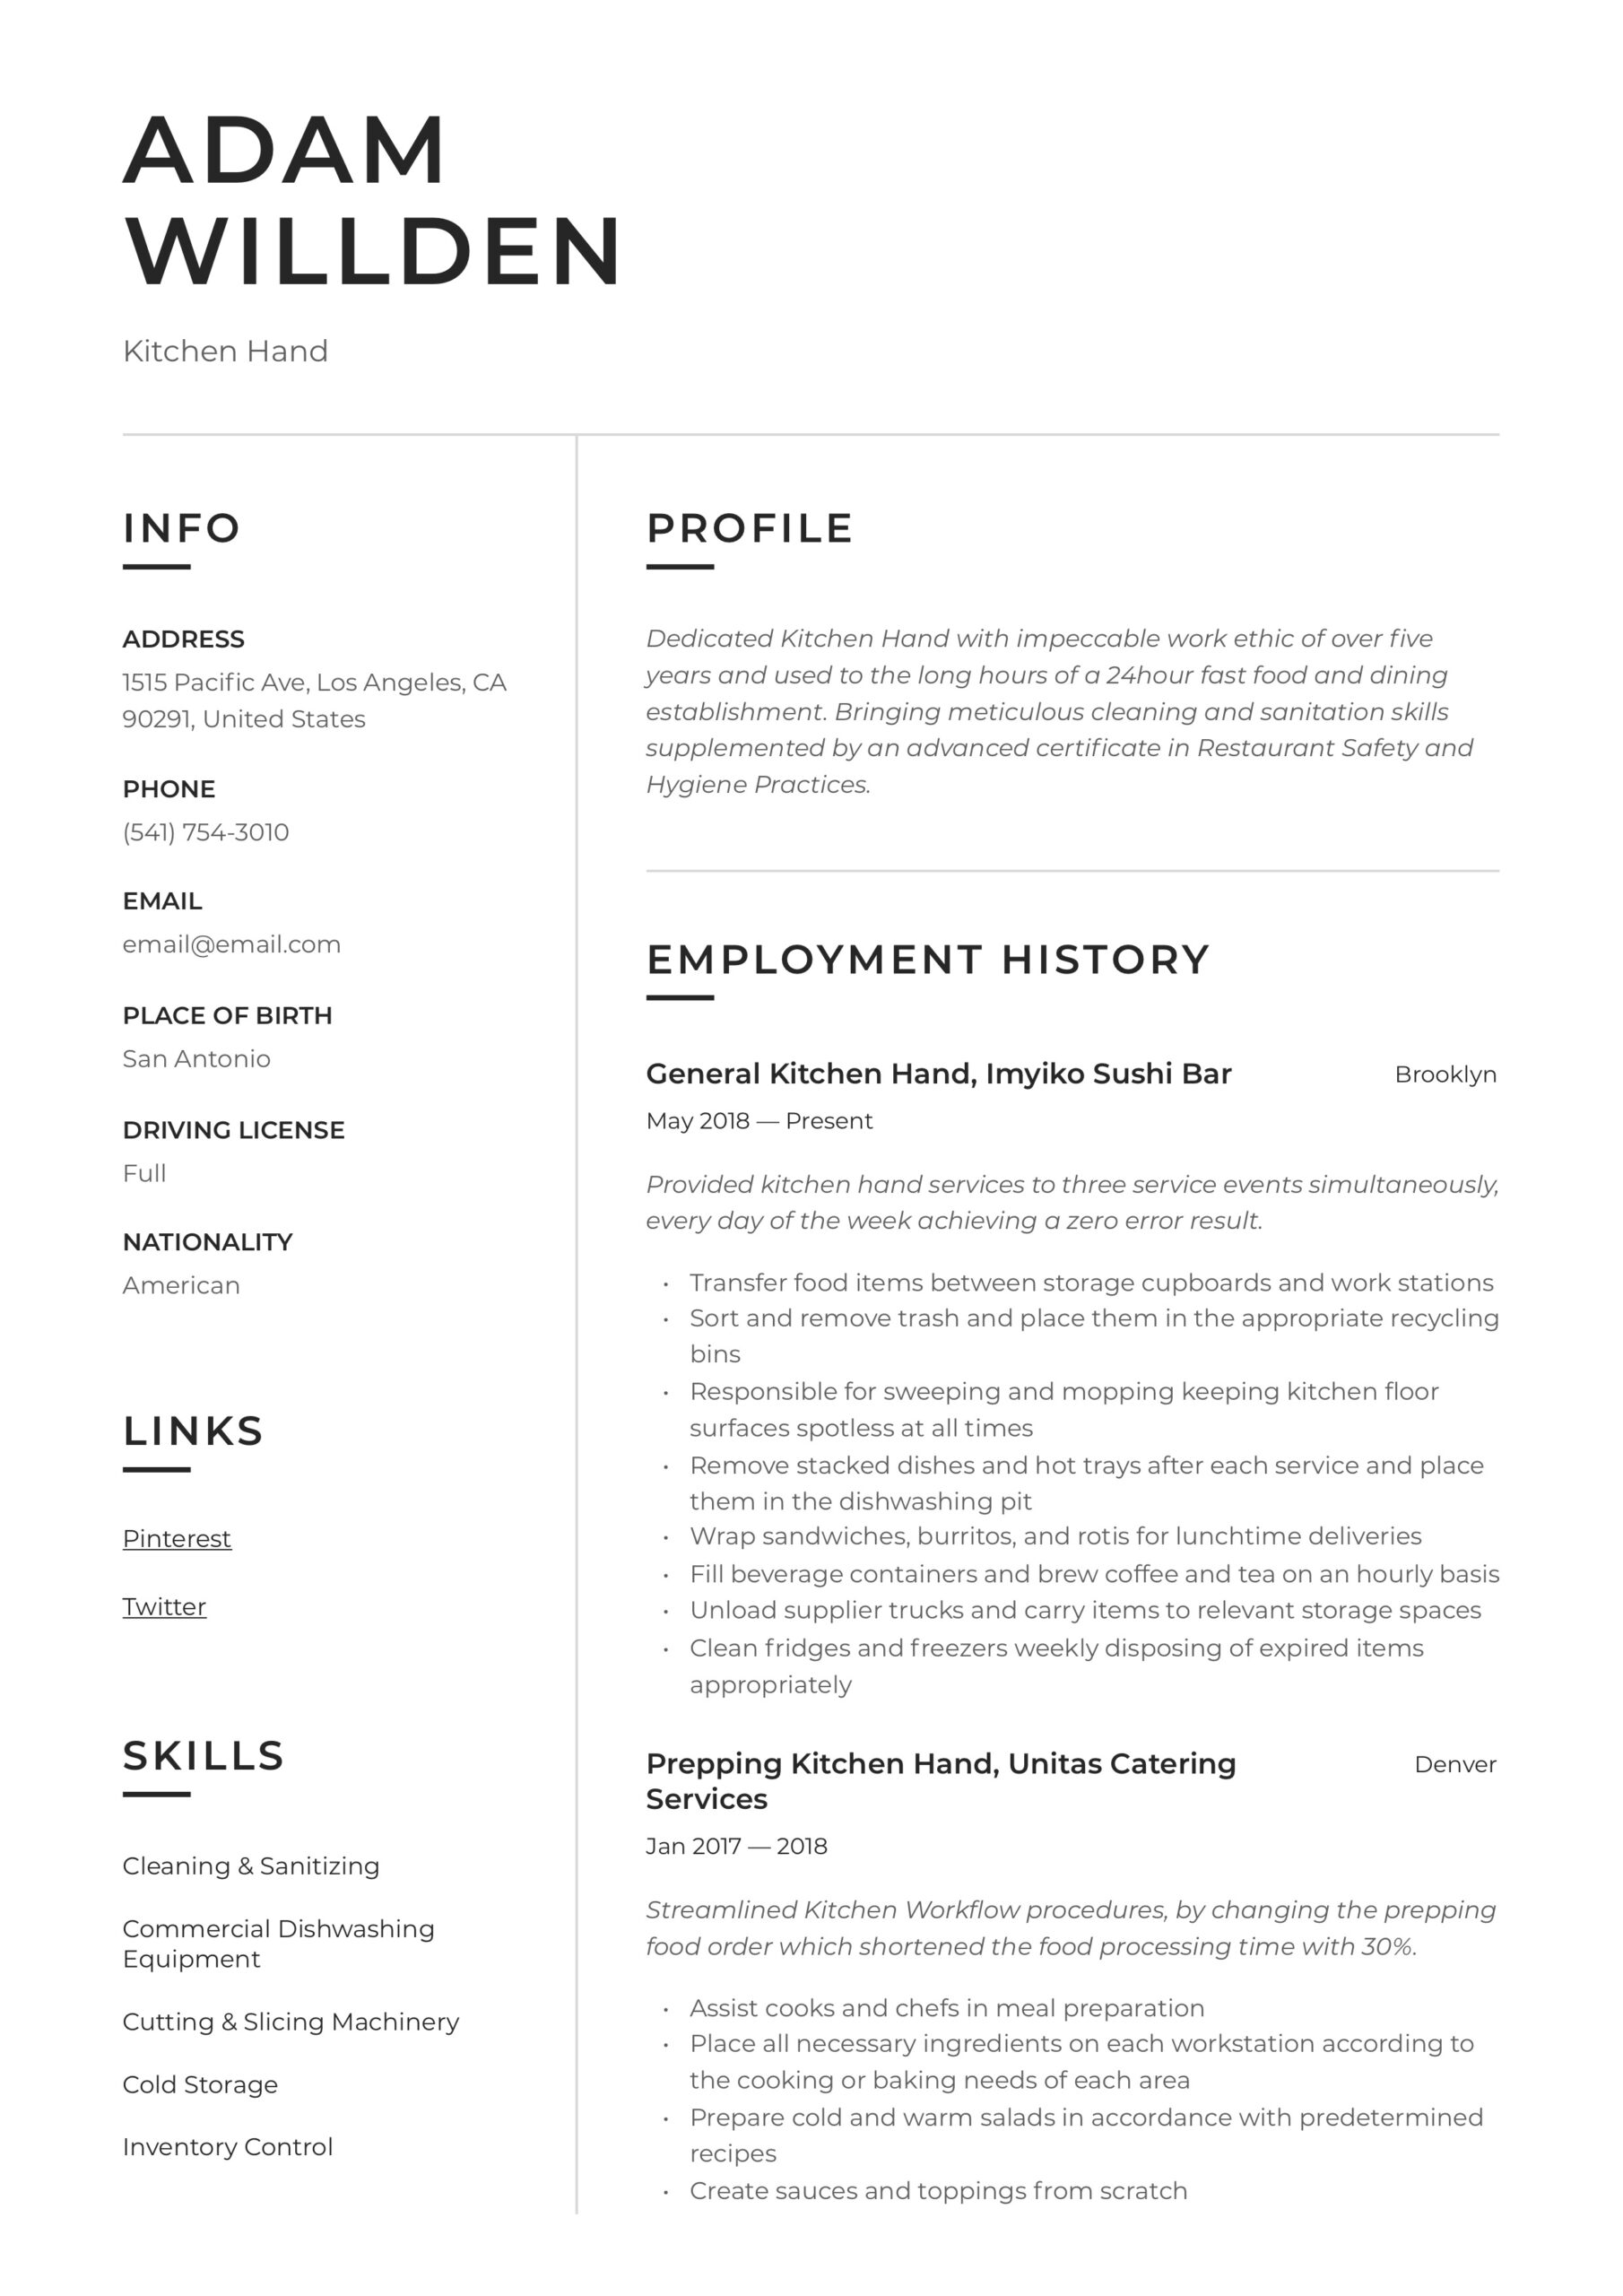 kitchen resume writing guide free templates responsibilities printable examples clean ads Resume Kitchen Hand Responsibilities Resume